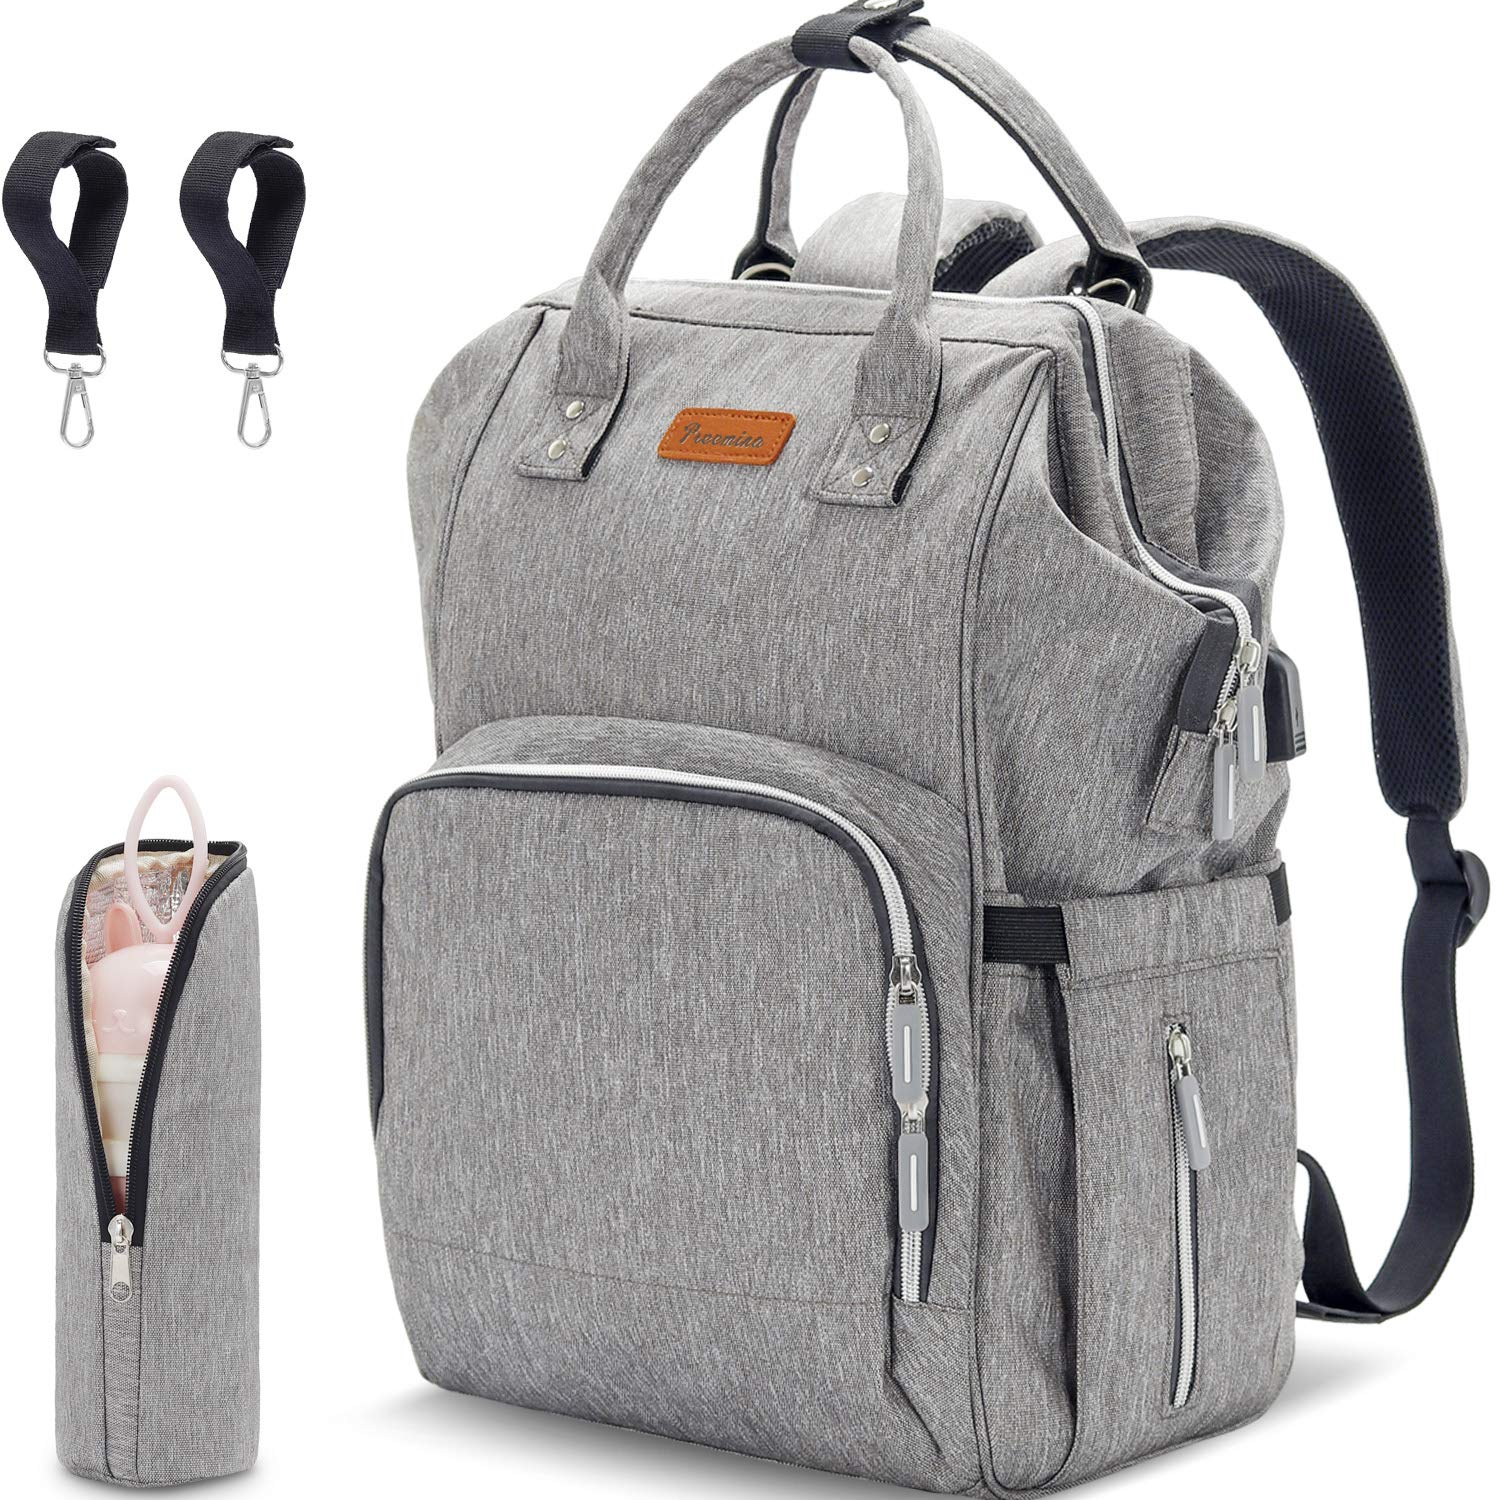 DIAPER BAG BACKPACK - MULTIFUNCTION LARGE TRAVEL BABY BAG USB CHARGING PORT & STROLLER STRAPS WATER-RESISTANT NAPPY BABY BAG INSULATED-POCKETS GRAY